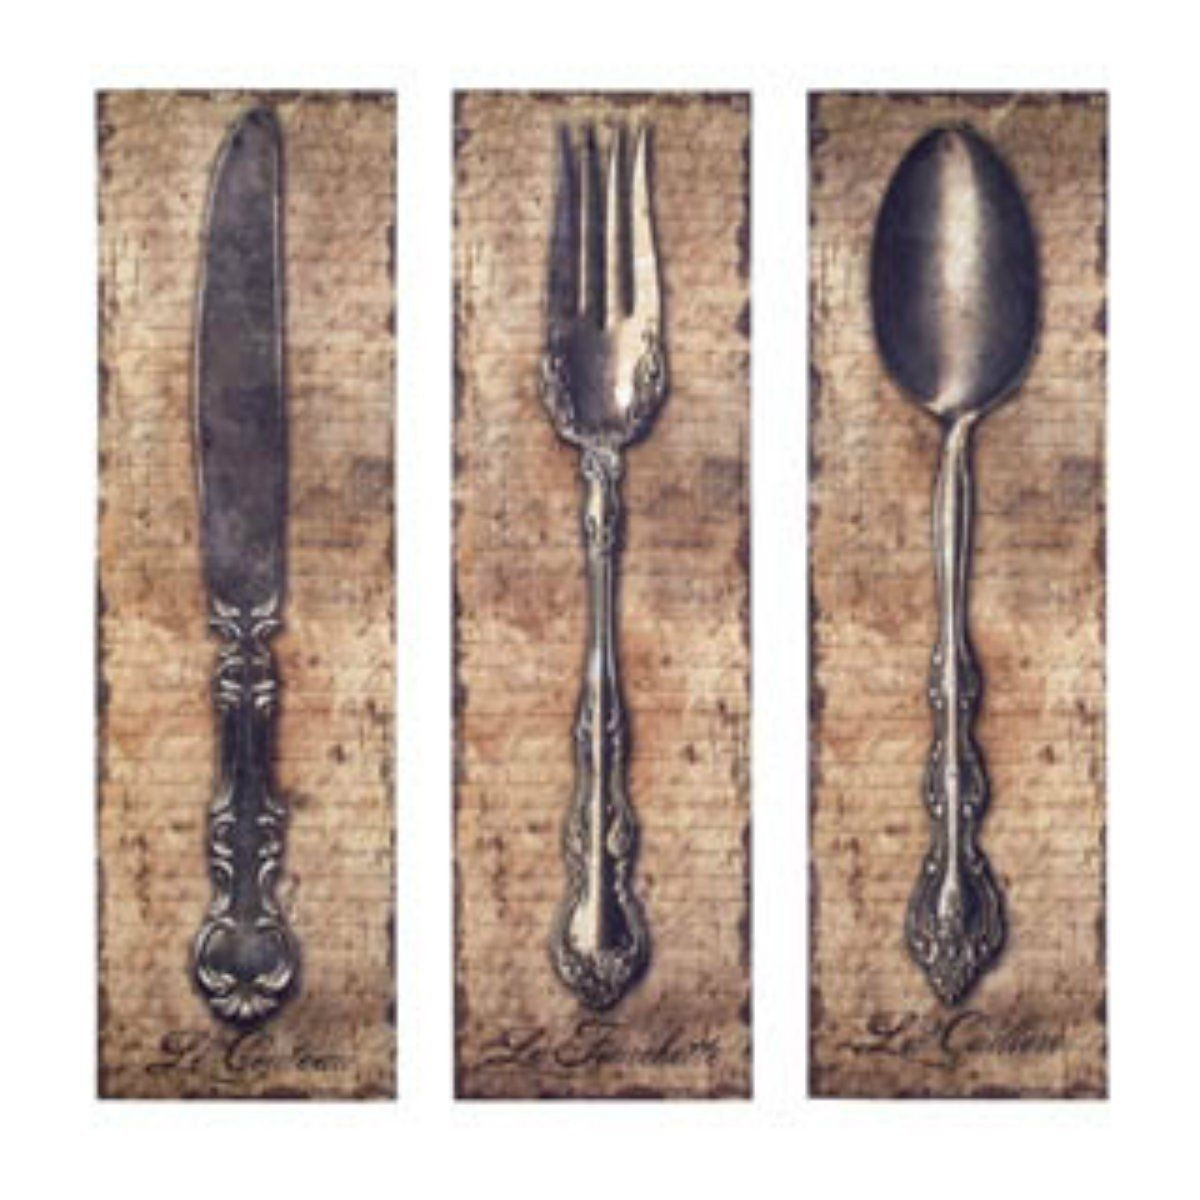 Vintage Kitchen Silverware Canvas Wall Art Spoon Knife Fork Intended For Current Fork And Spoon Wall Art (View 19 of 20)